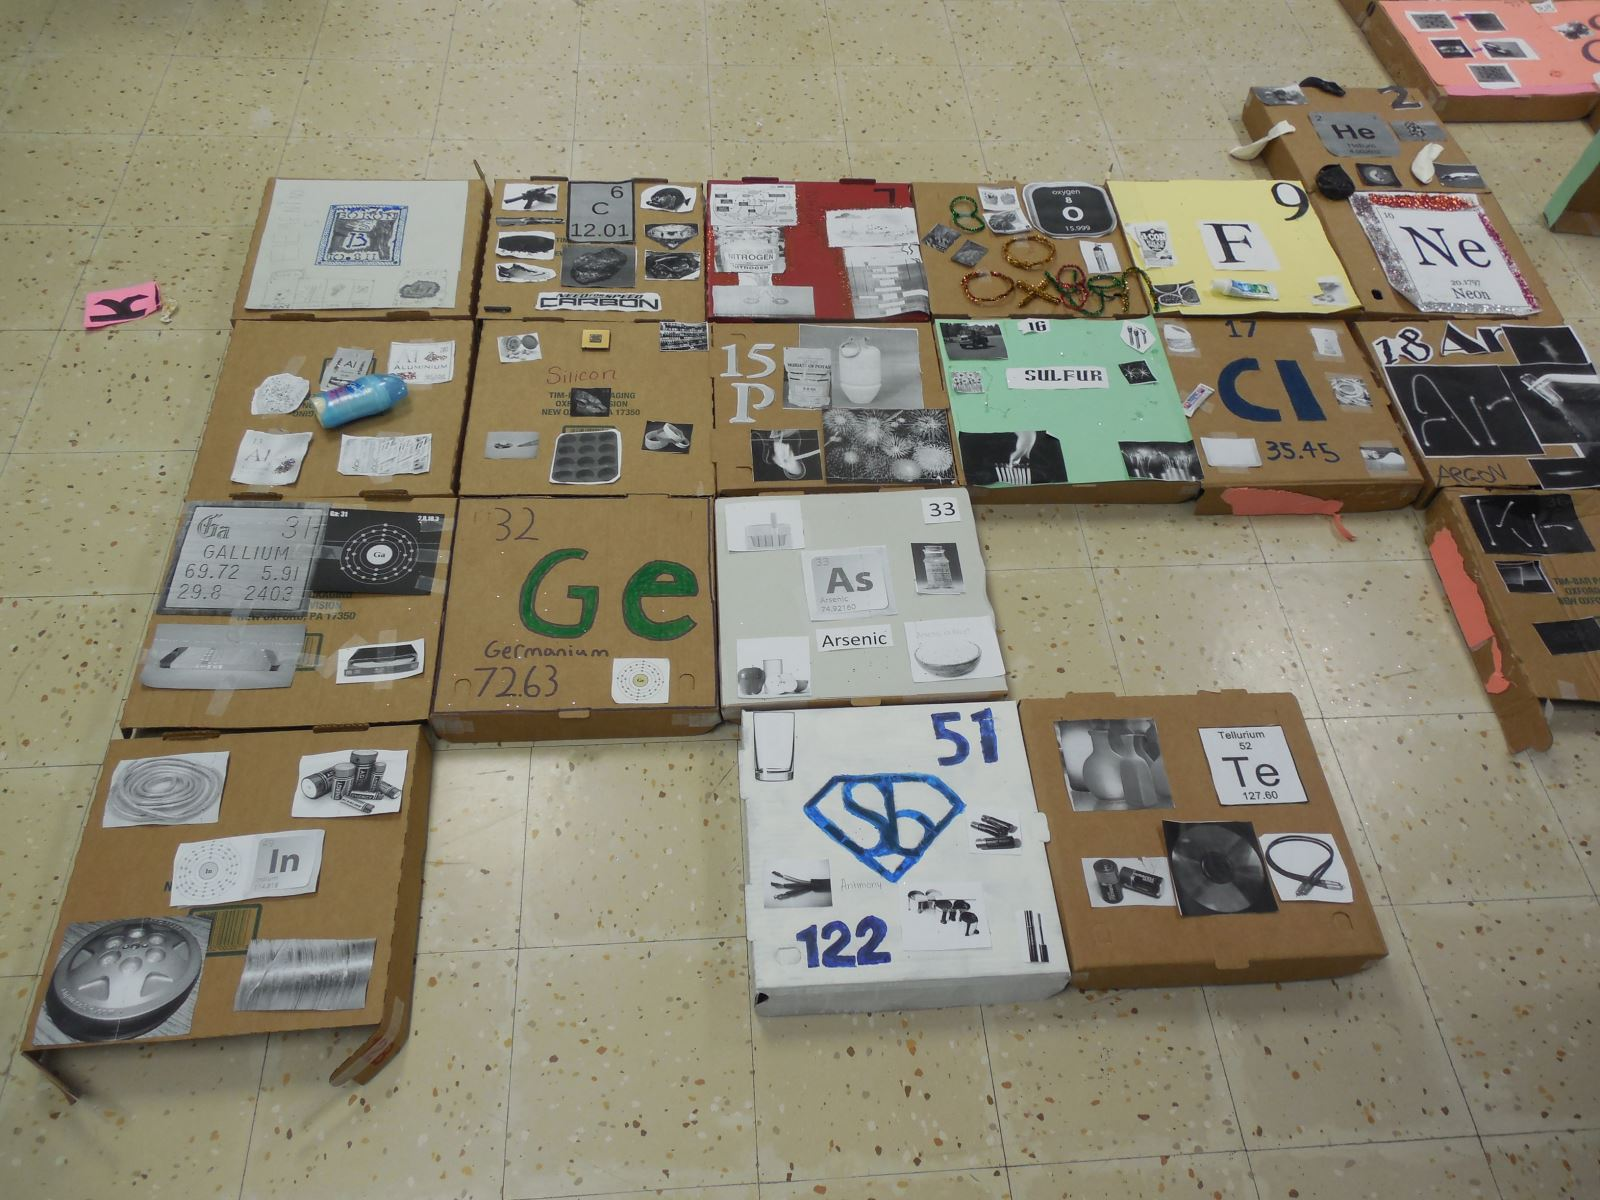 Cchs students build periodic table clinton county high school was assigned an element and designed the box to represent qualities of that element the boxes were then hot glued together to form the periodic table urtaz Images